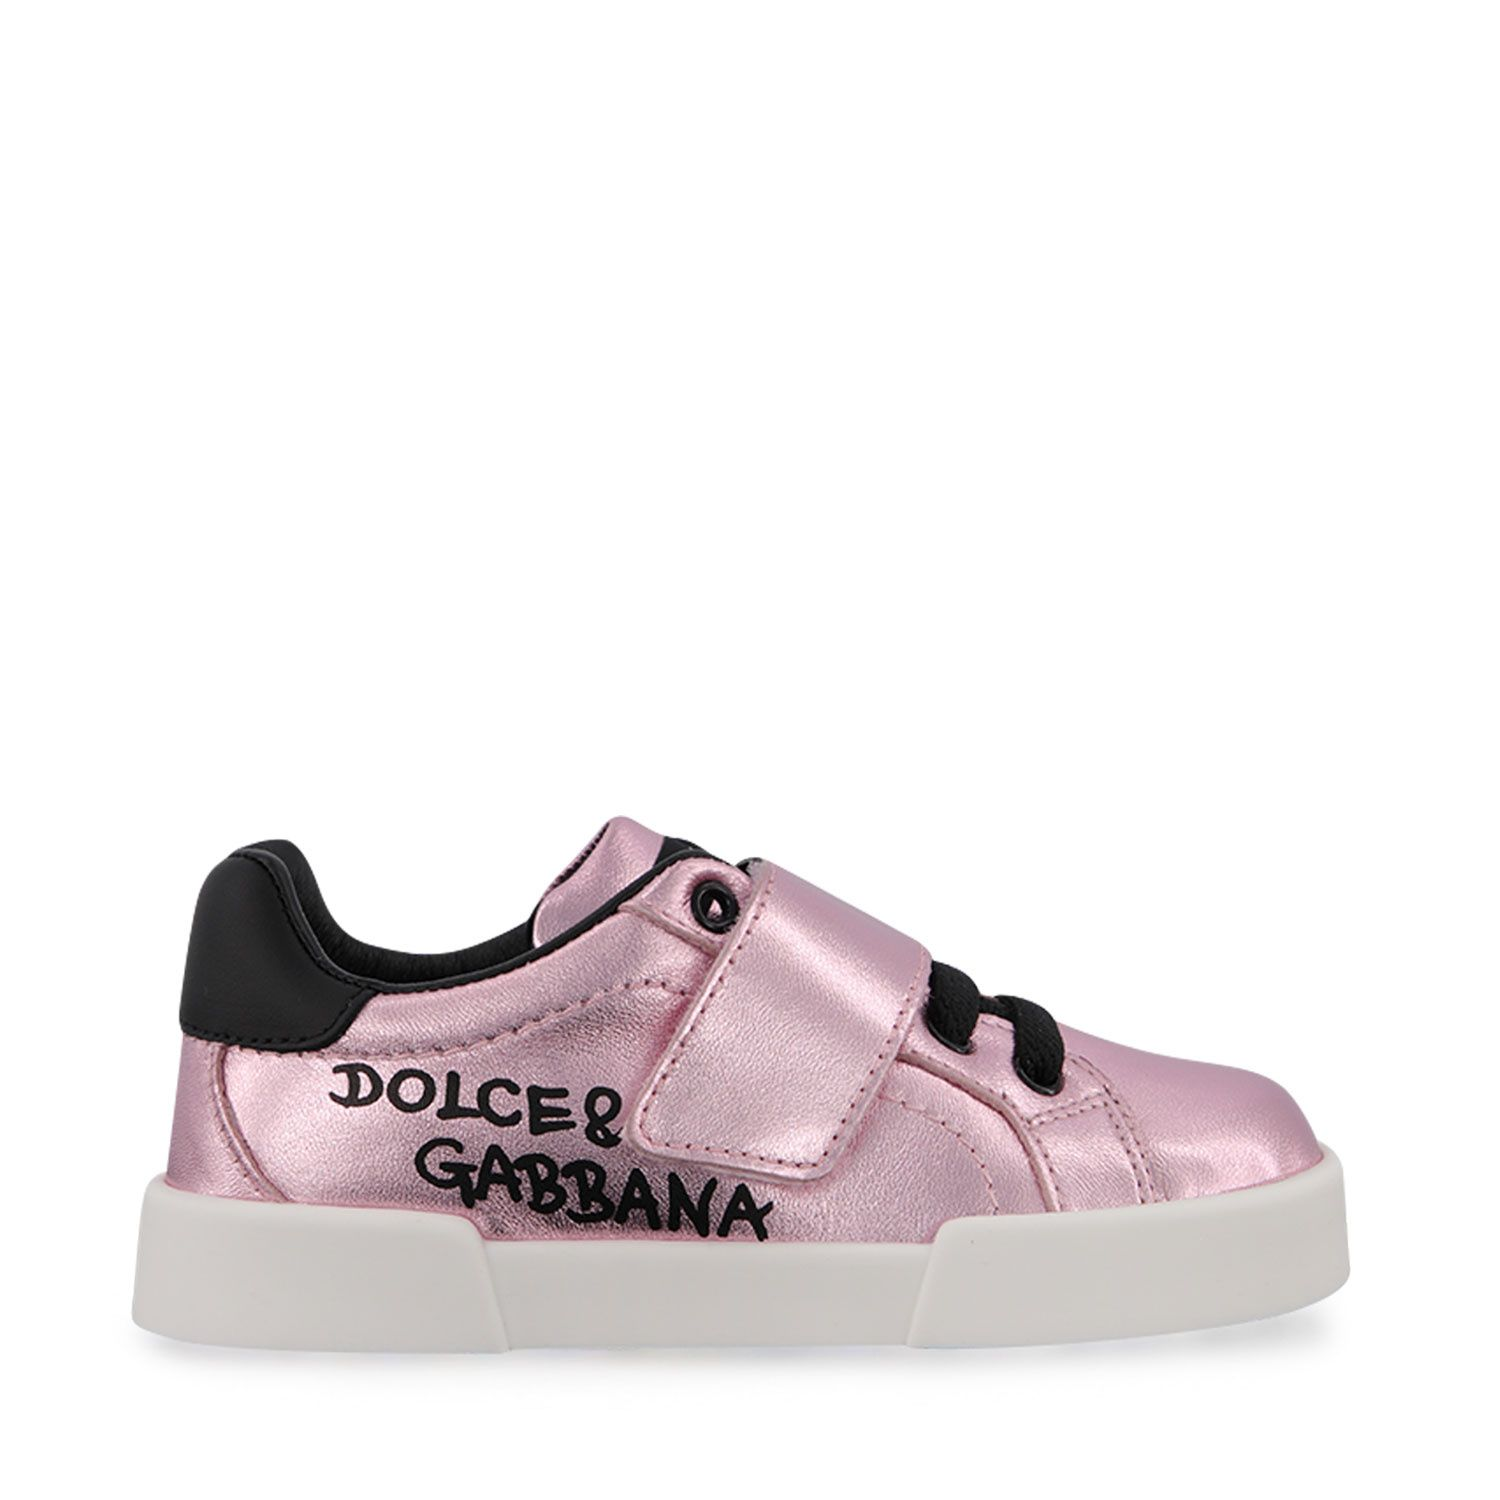 Picture of Dolce & Gabbana DN0155 AN442 kids sneakers pink